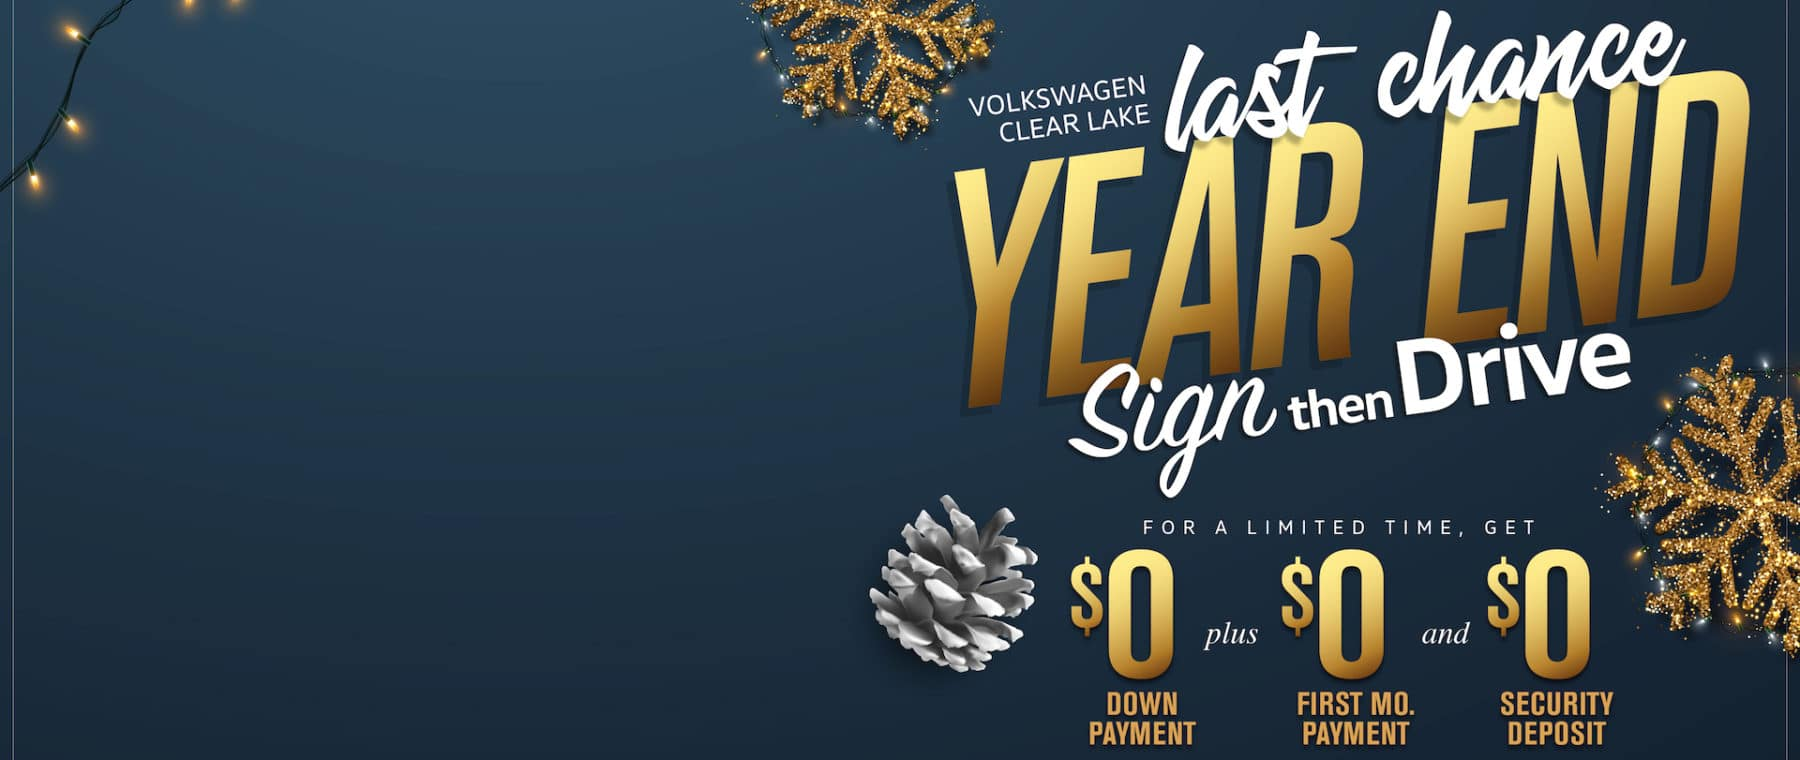 Don't miss our Last Chance Year End Sign Then Drive Sale at Volkswagen Clear Lake!